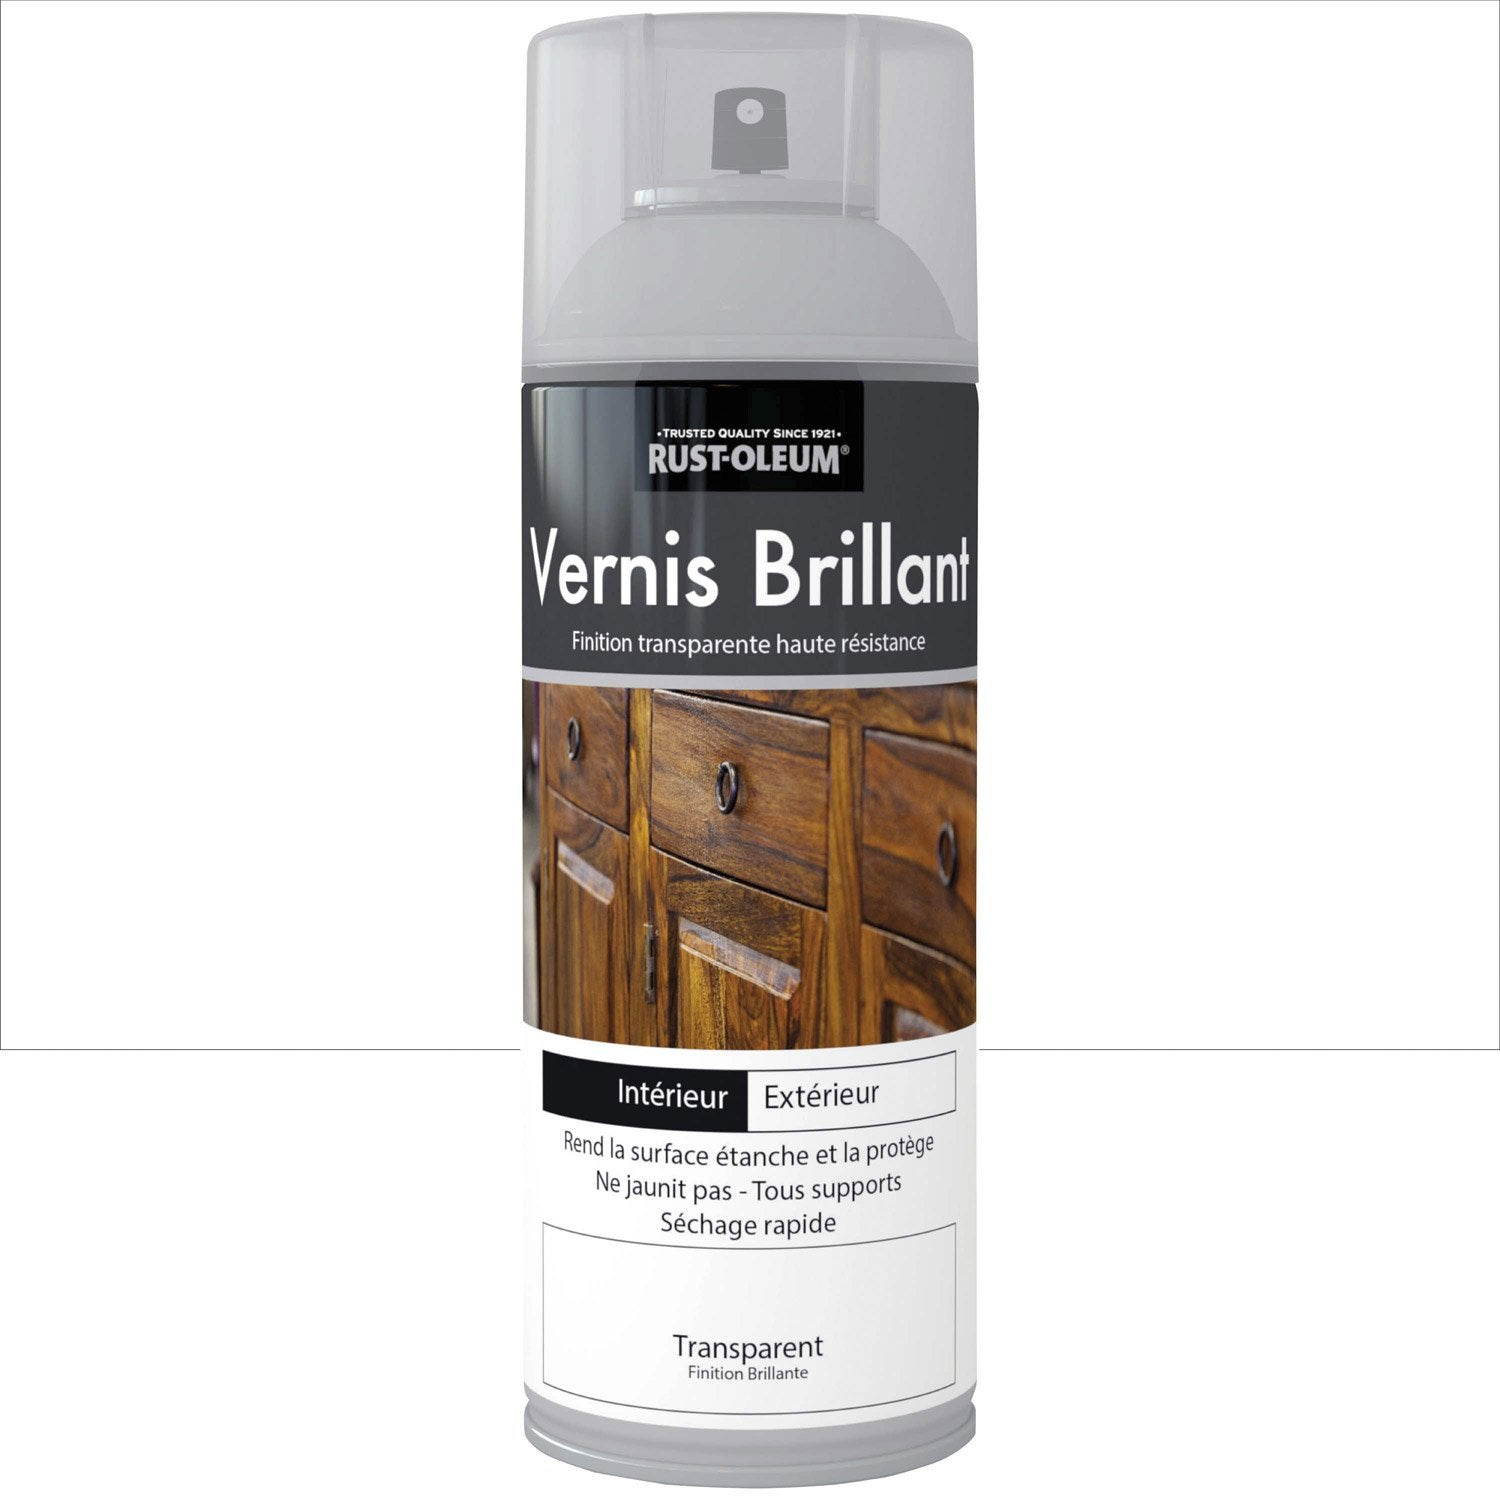 vernis en bombe a rosol brillant rustoleum incolore 0 4 l leroy merlin. Black Bedroom Furniture Sets. Home Design Ideas